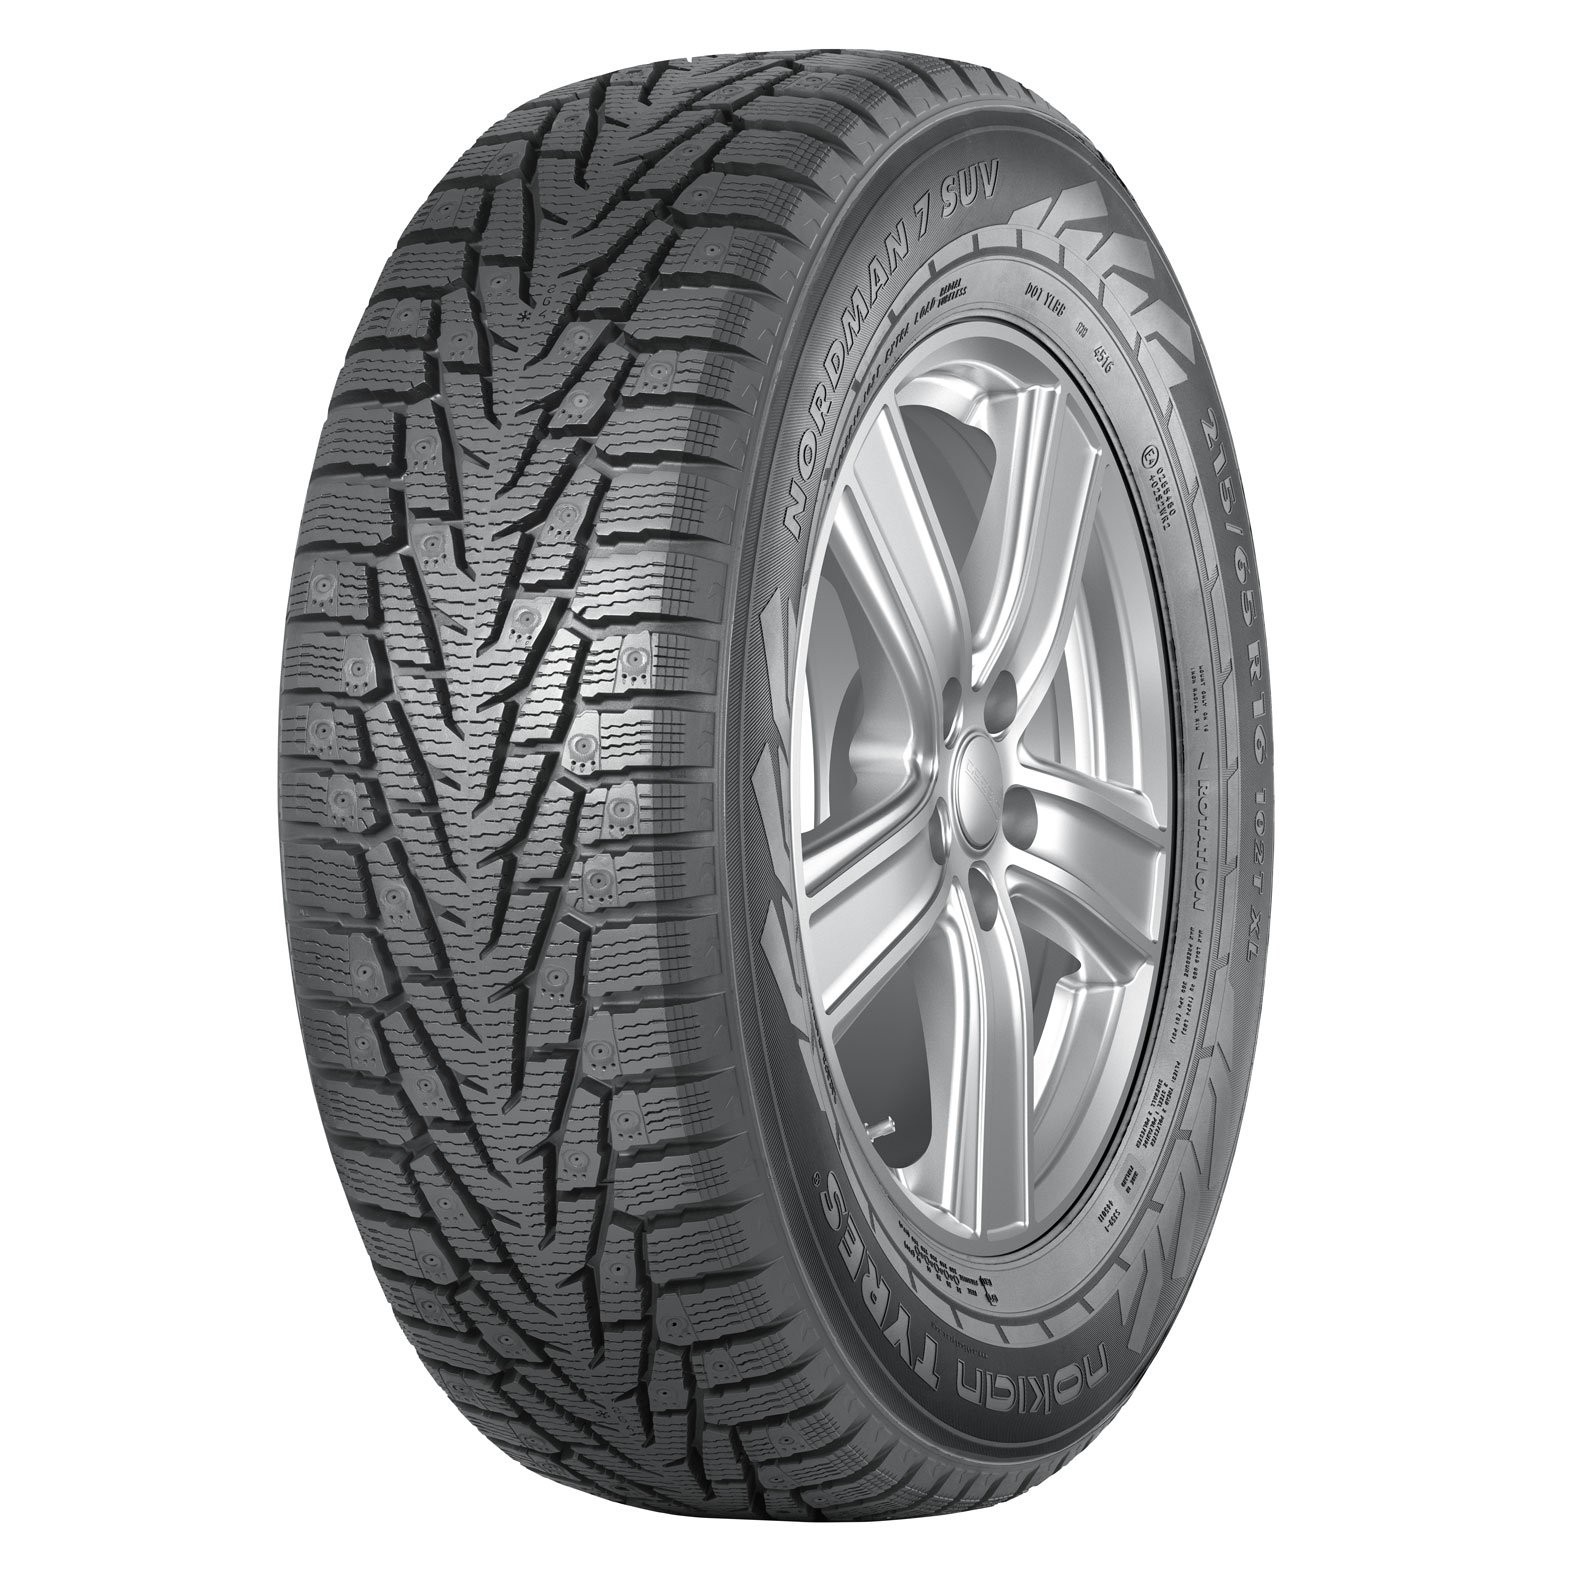 225/60R18 104T XL Nokian Nordman 7 SUV Non-Studded Winter Tire